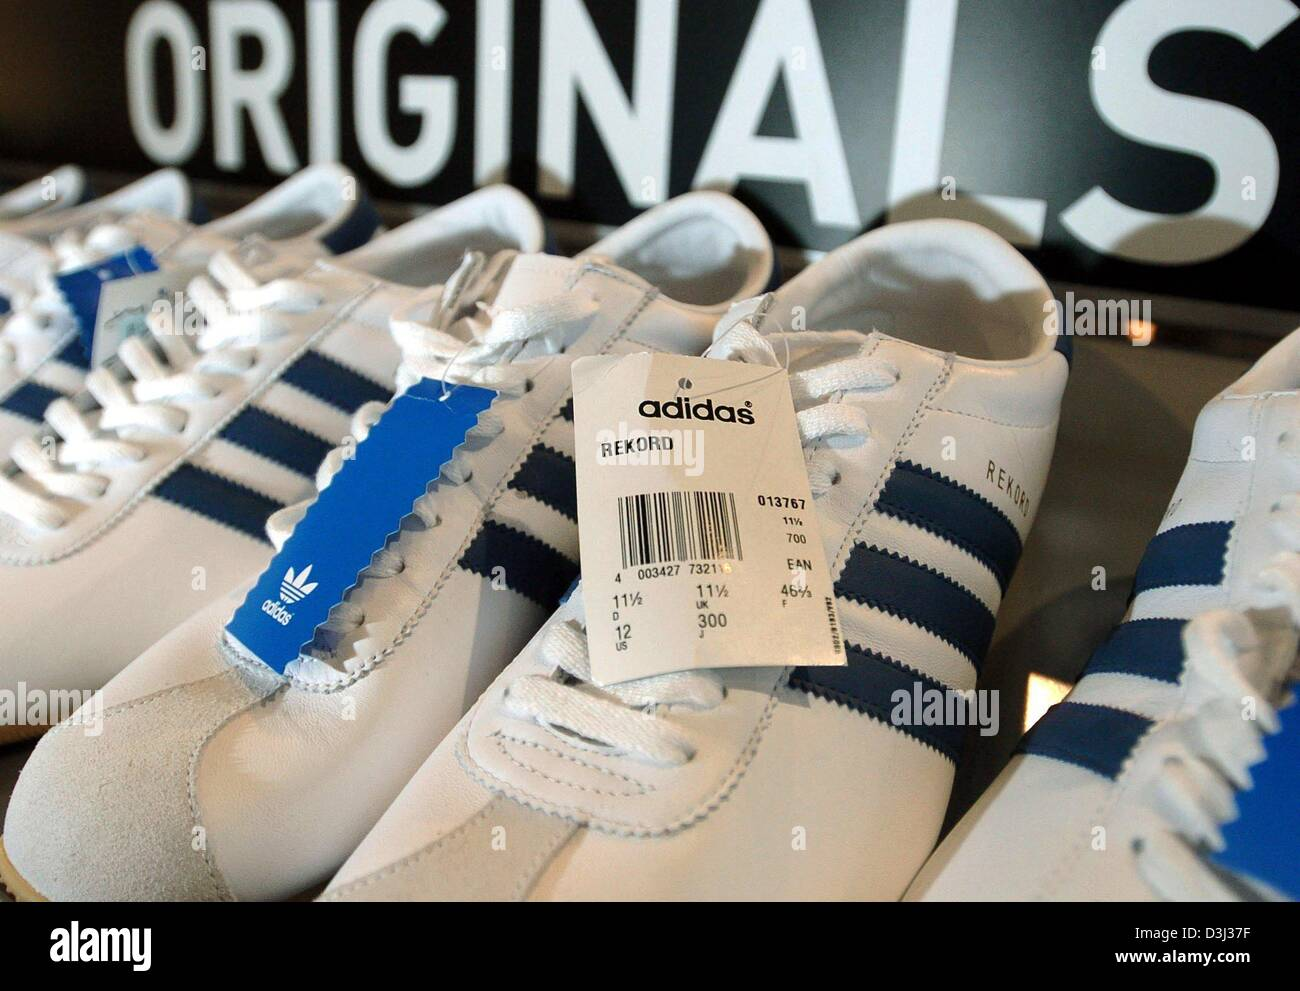 a dpaAdidas shelf the in sneakers at Originals stand EYWH9ID2